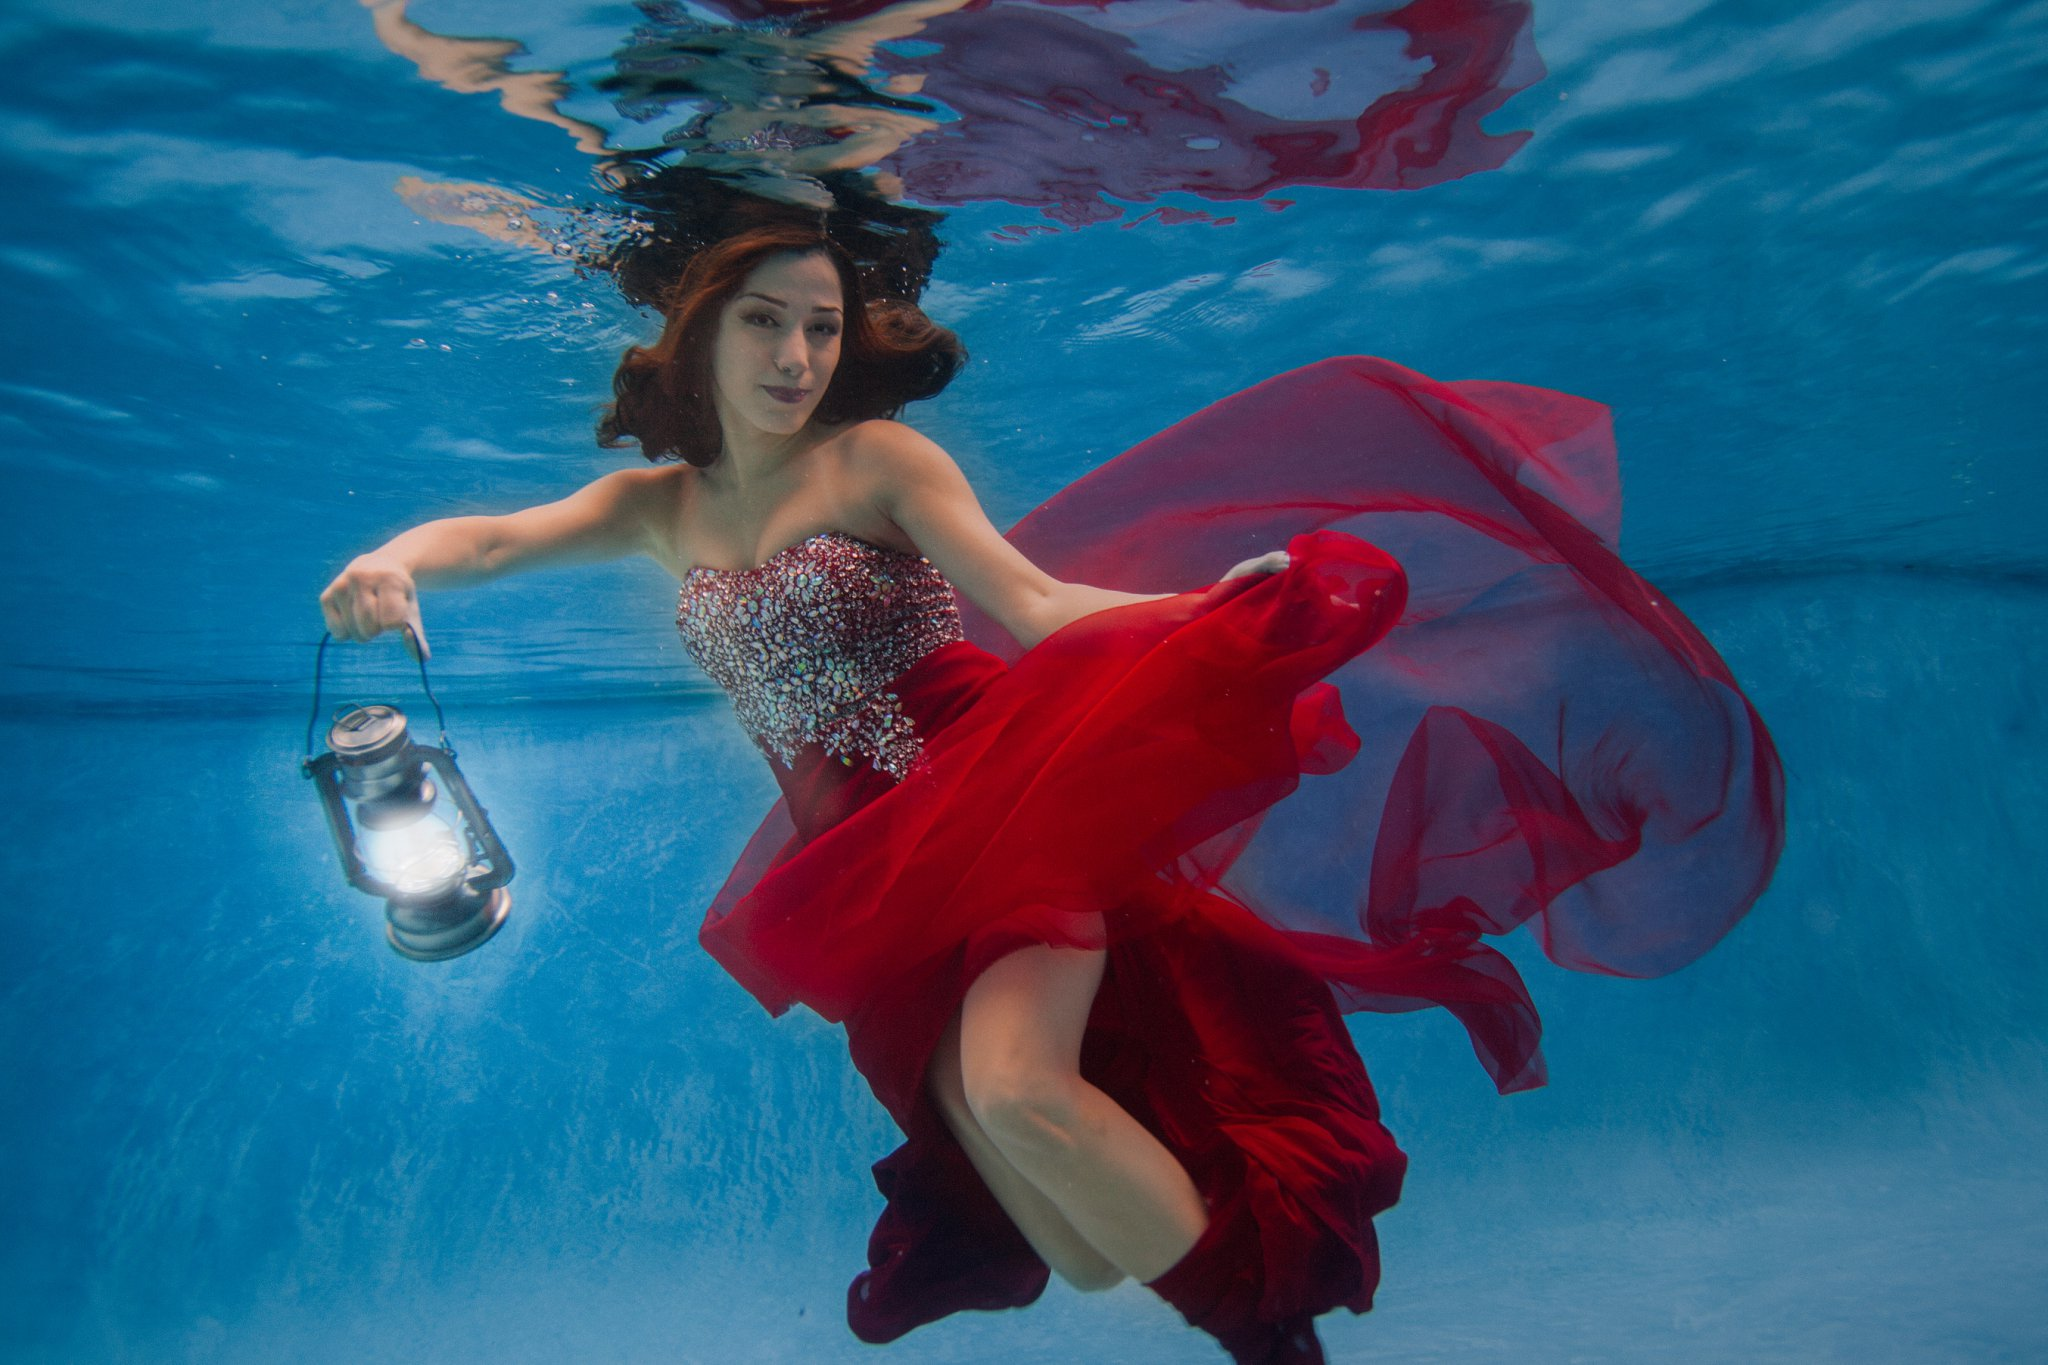 woman in red dress underwater fashion photos